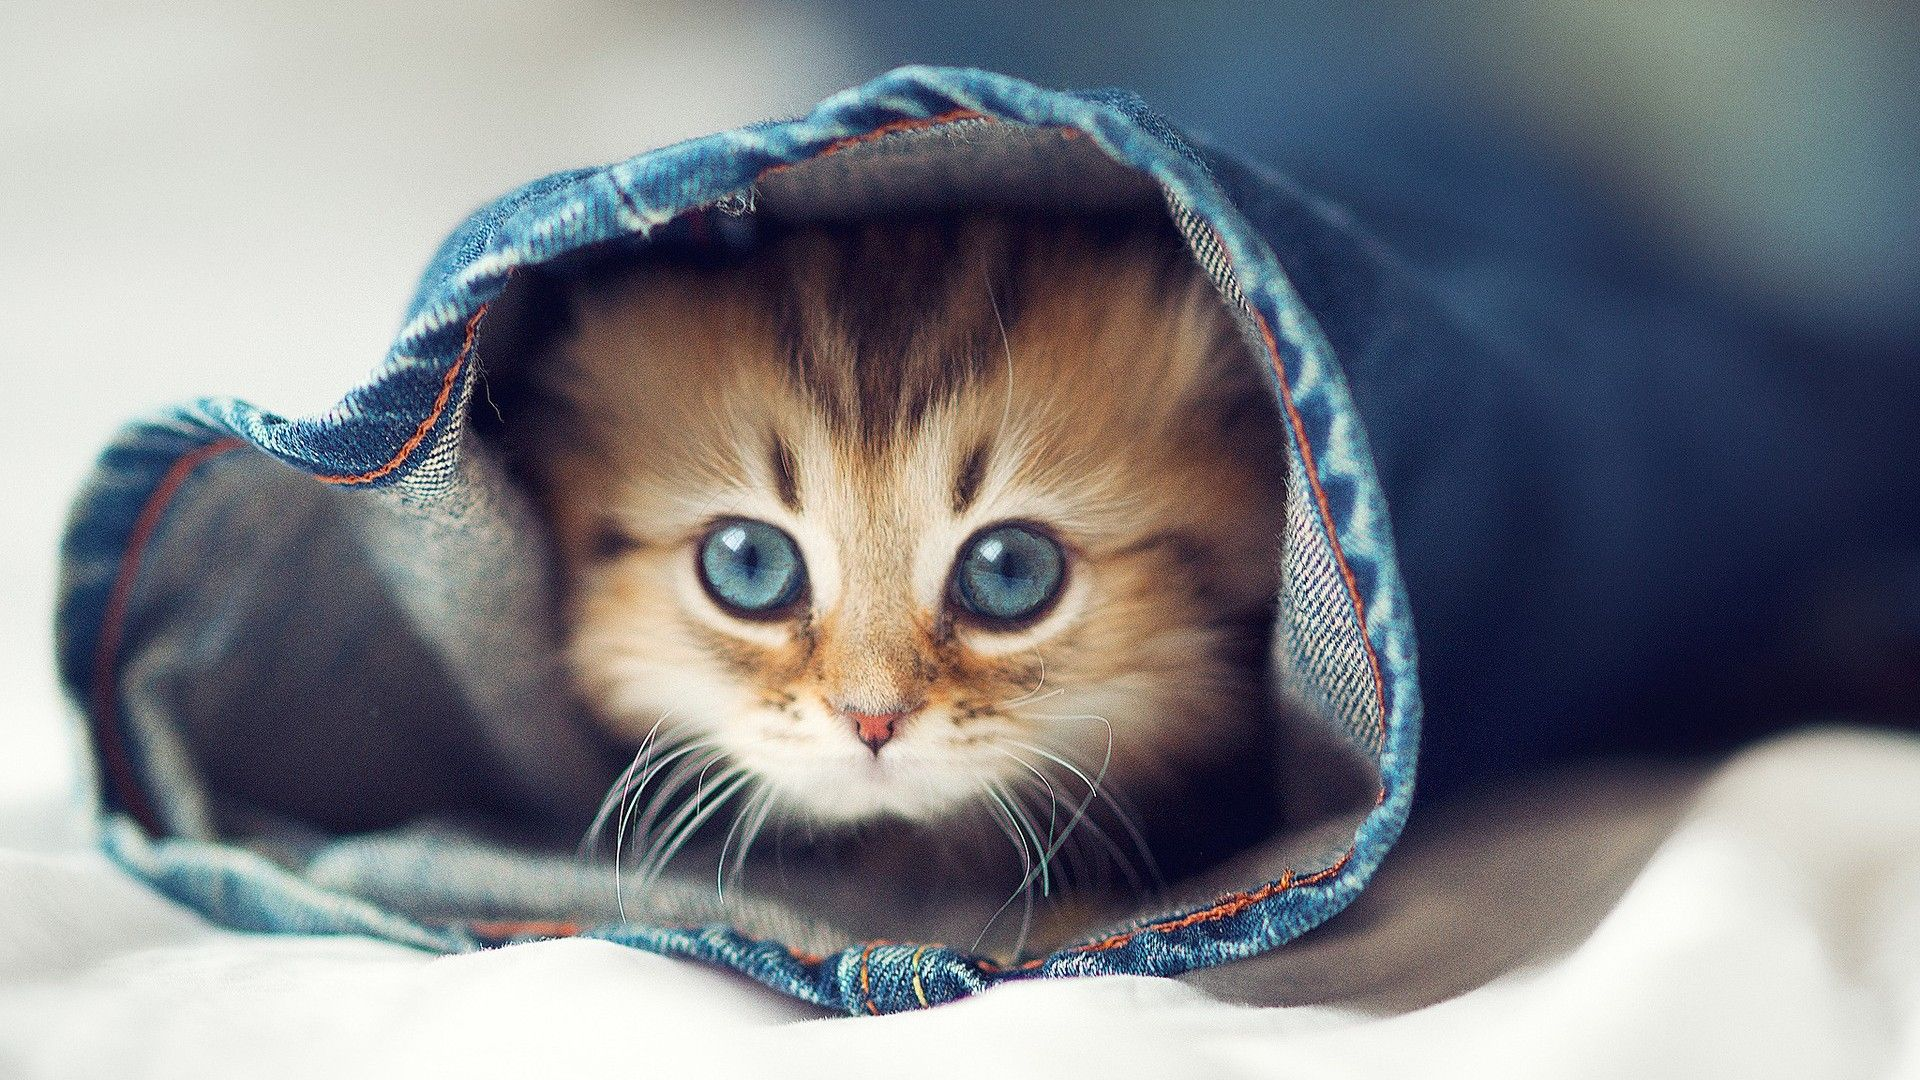 Cute Kitty Wallpapers   Top Cute Kitty Backgrounds 1920x1080